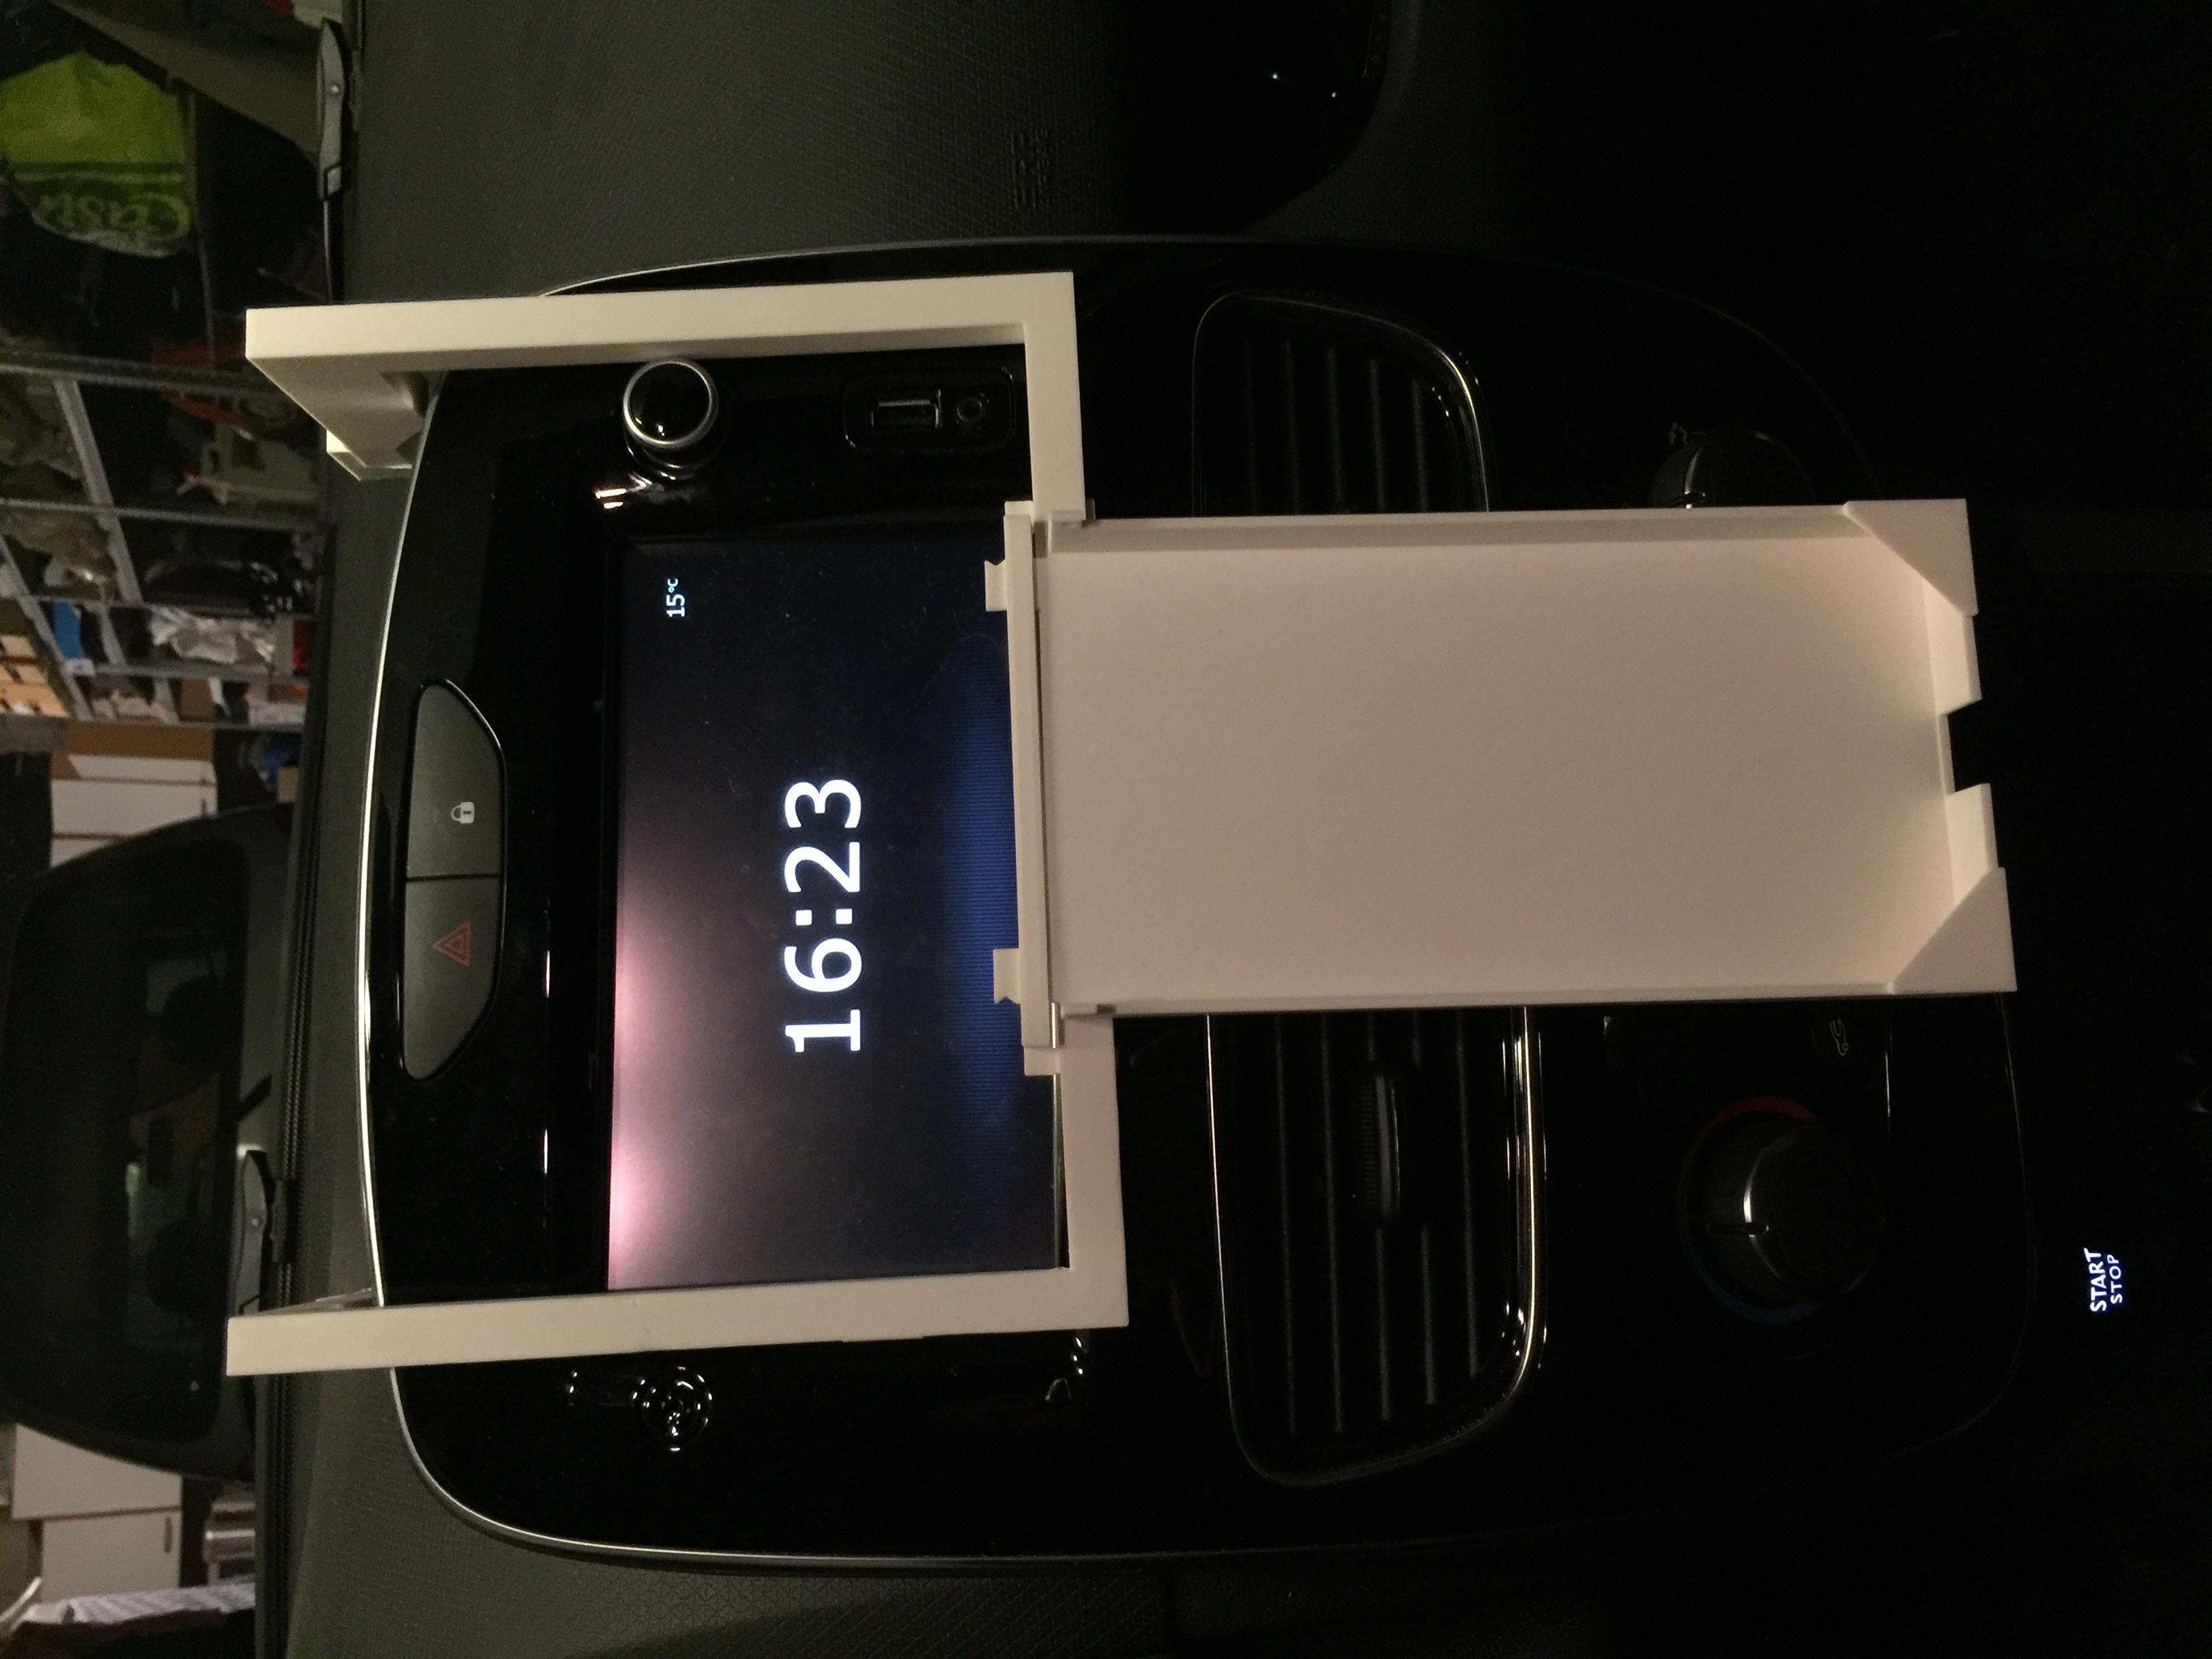 IPhone 6/7/8 Plus support for renault Clio IV by ptro46 - Thingiverse